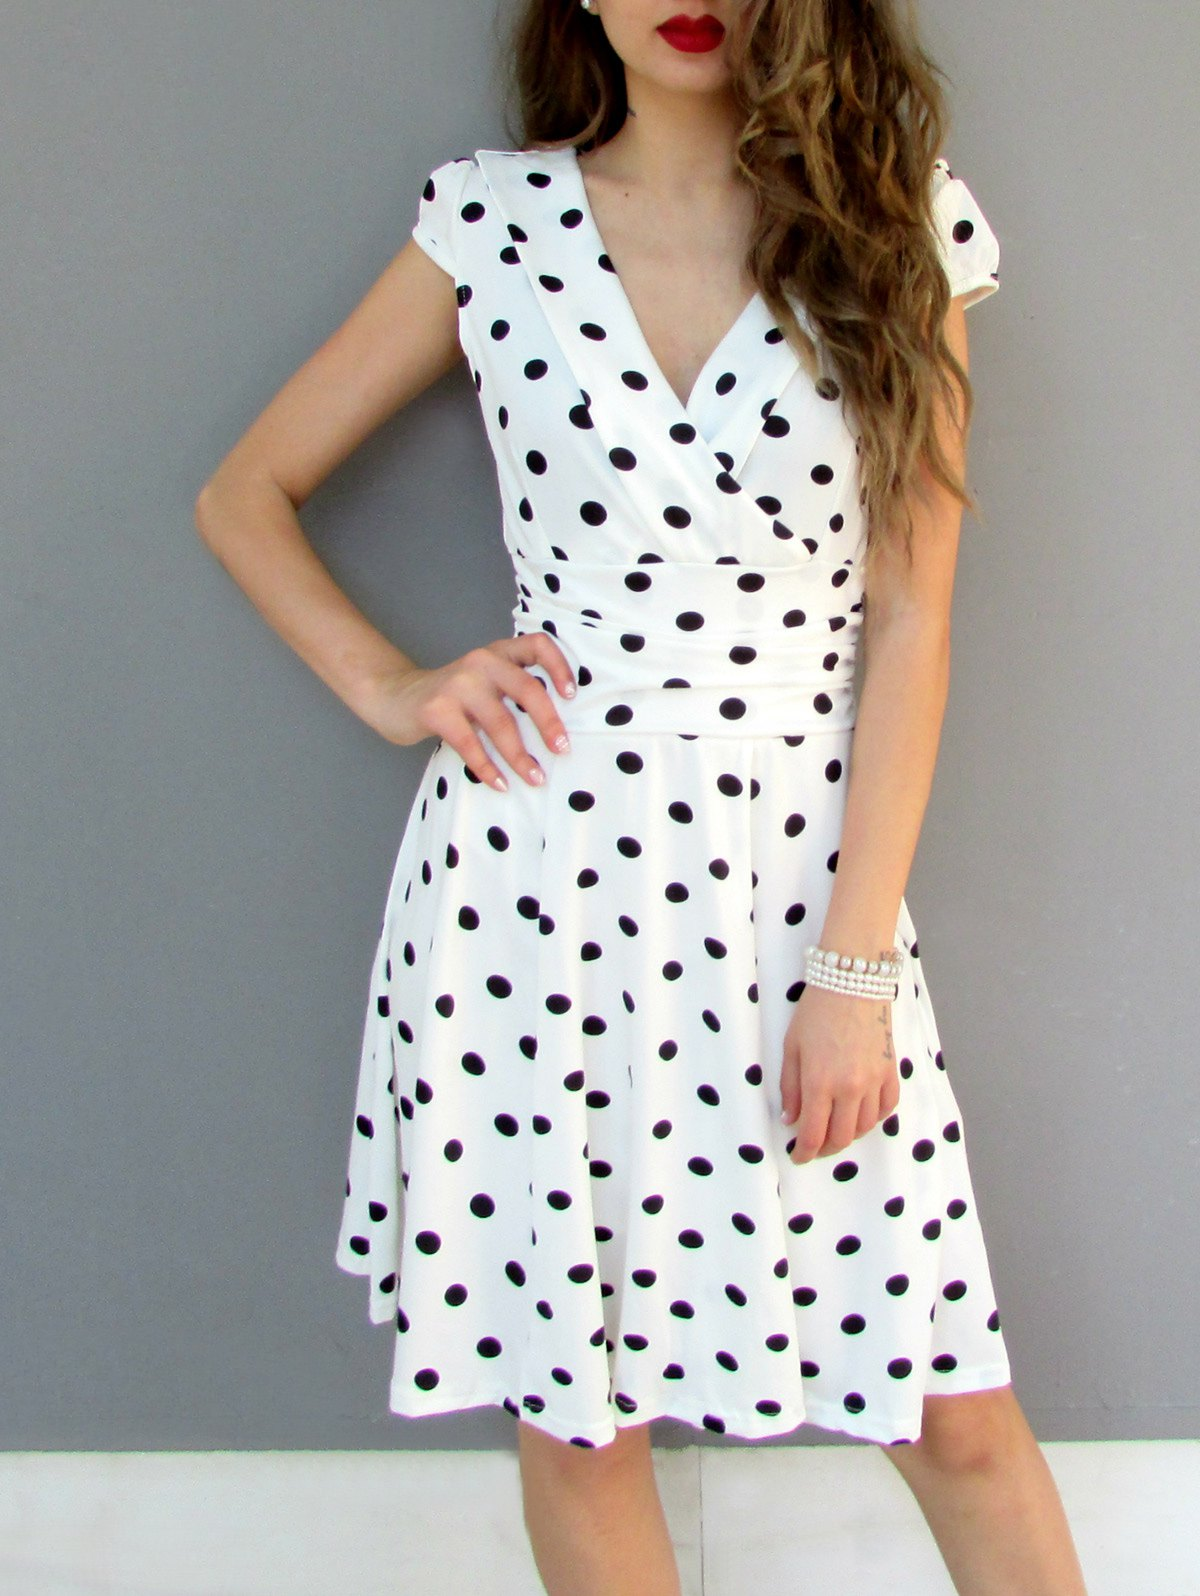 Stylish Short Sleeve V-Neck Polka Dot Dress For Women - WHITE L